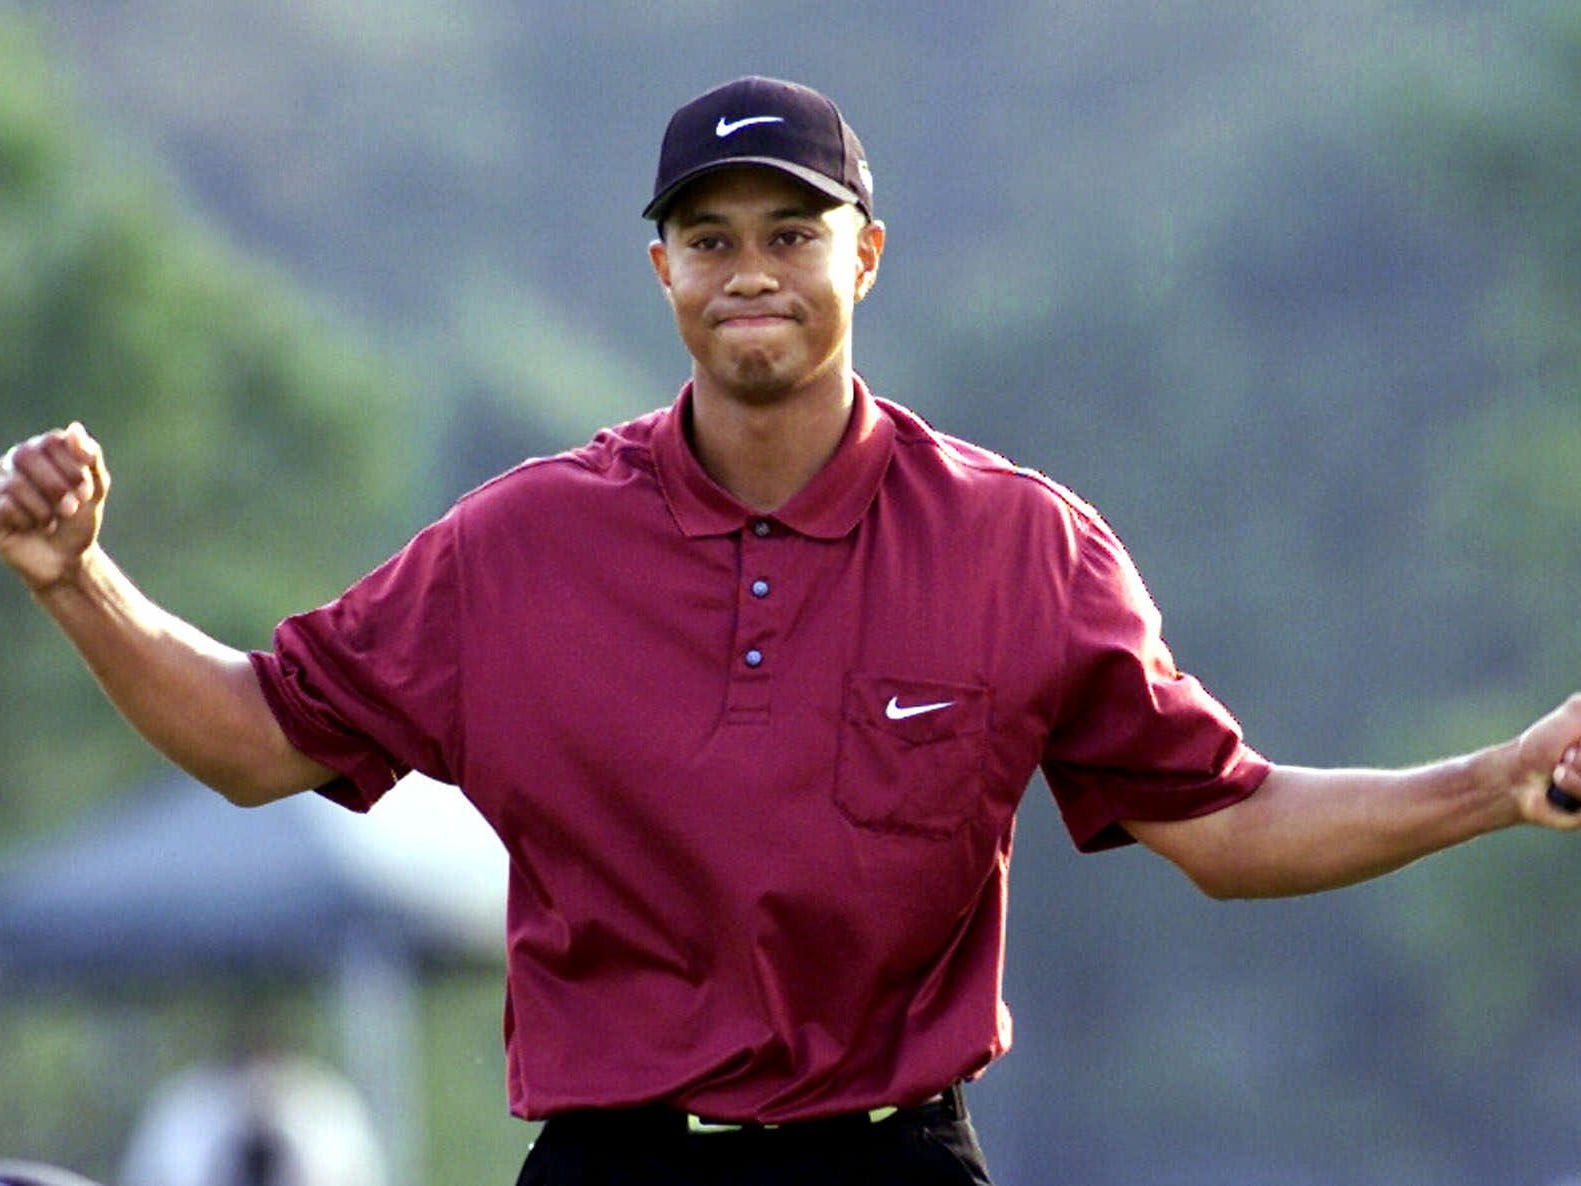 Tiger Woods completes the Tiger Slam at the 2001 Masters. He becomes the only player to hold all four professional majors at the same time.